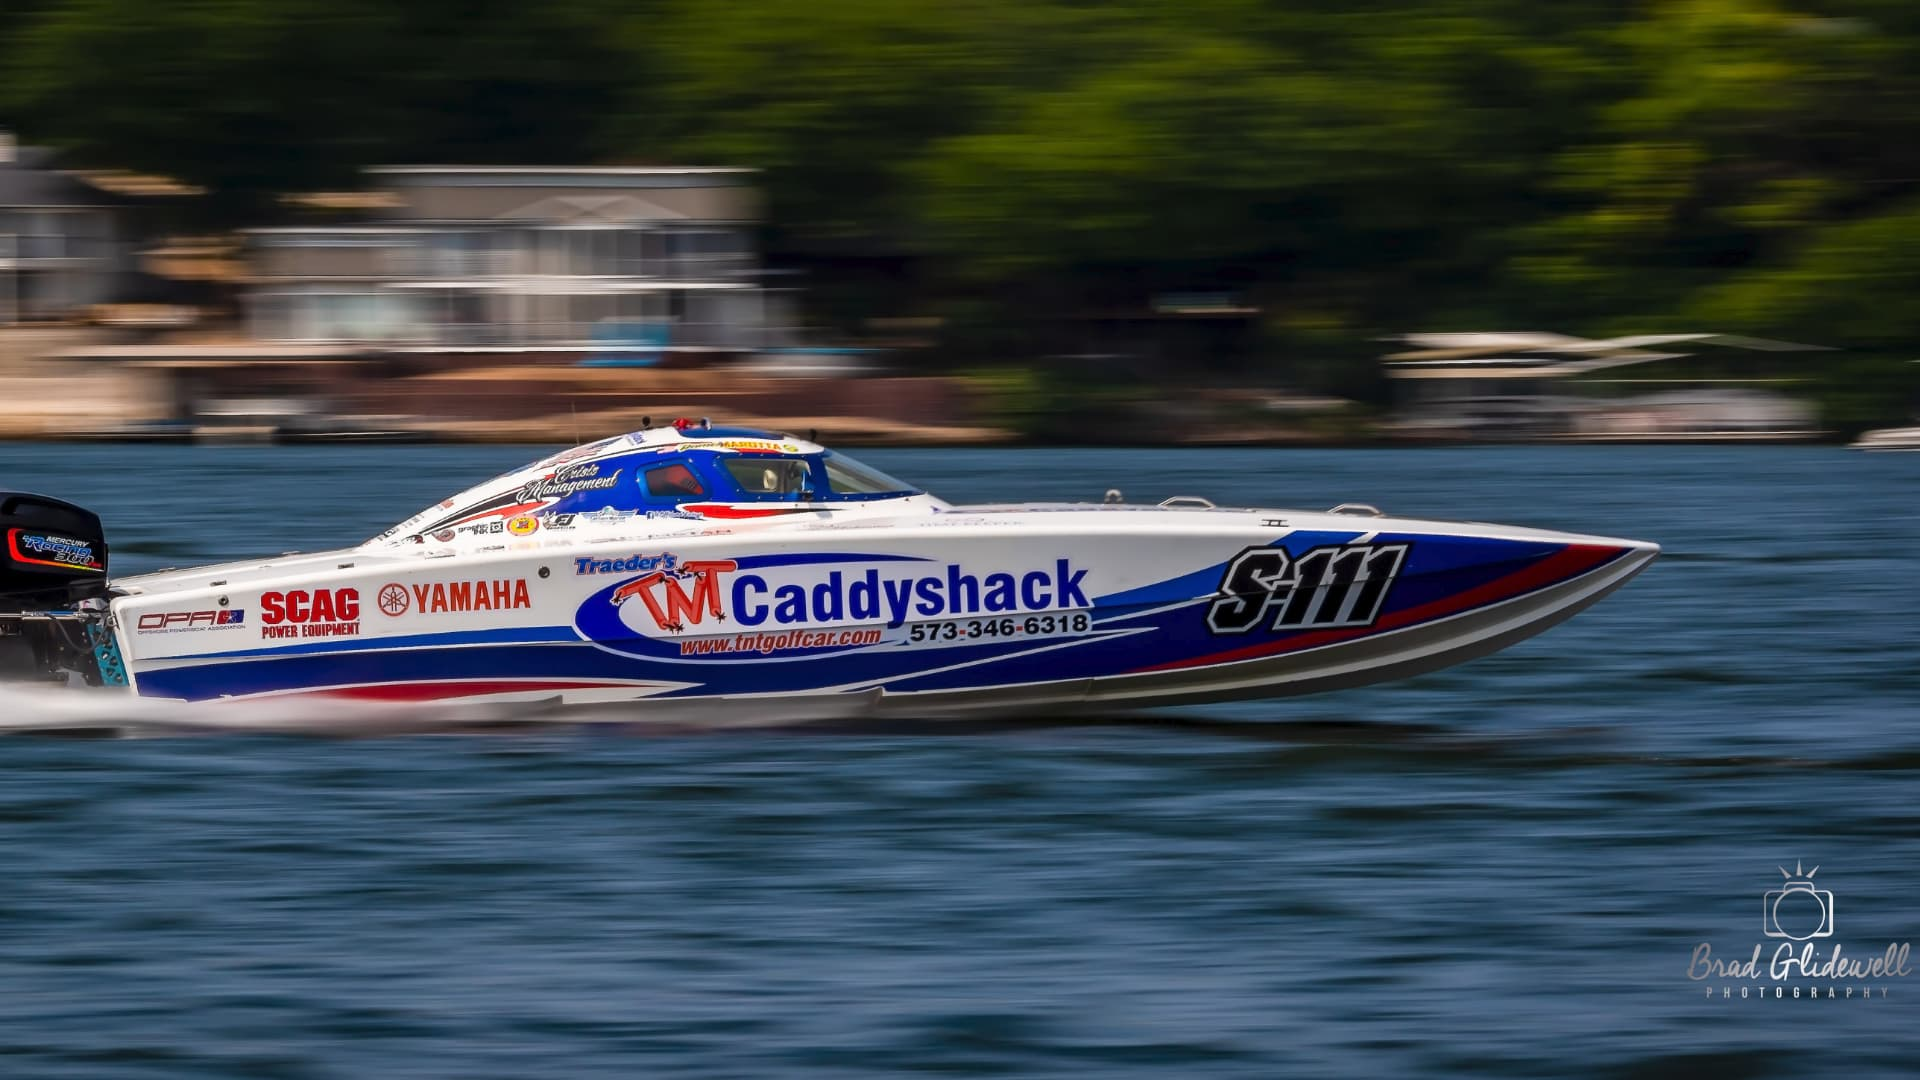 Boat racing at Lake of the Ozarks